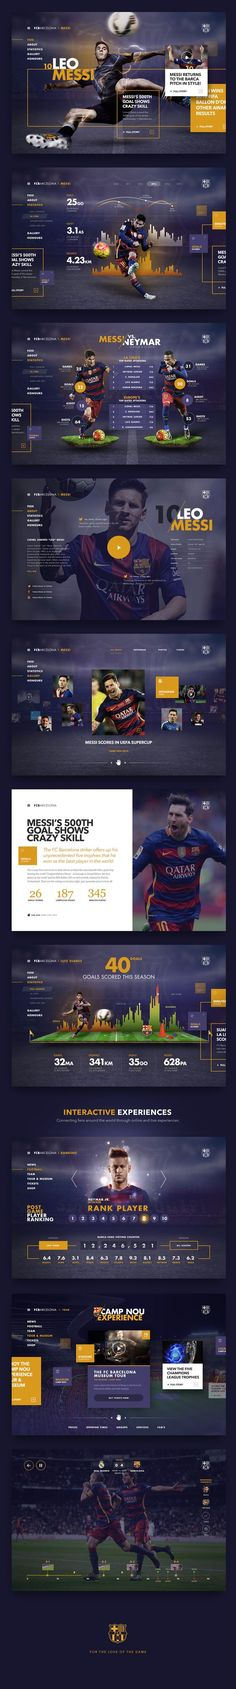 FC Barcelona design by Fred Nerby. https://www.behance.net/gallery/37276397/FC-Barcelona: